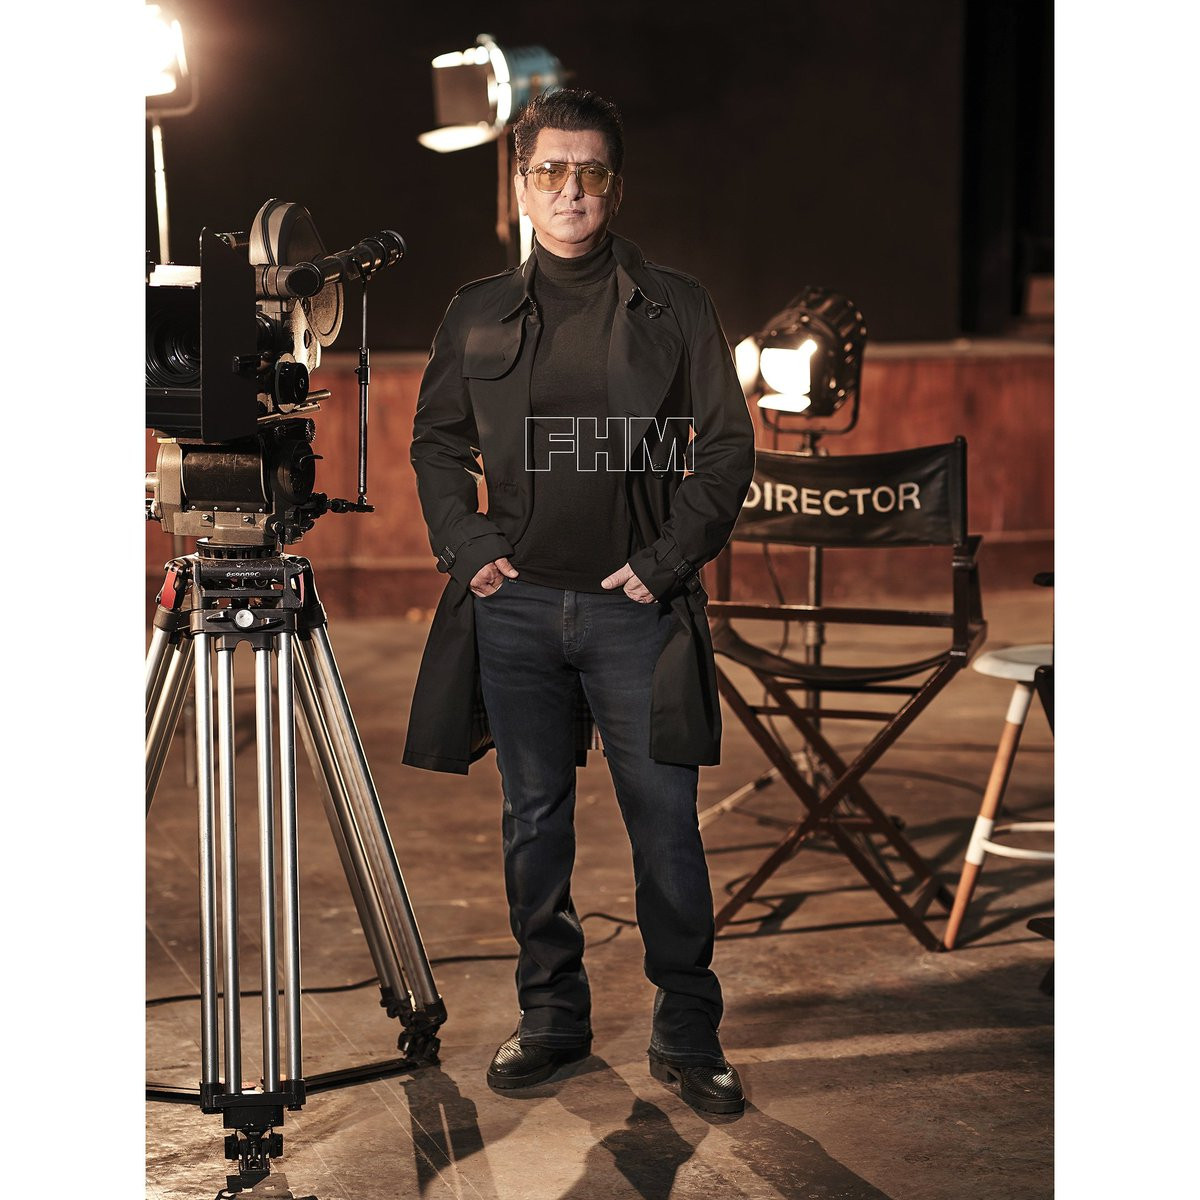 The man who took action in Bollywood to another level, Sajid Nadiadwala!  : @avigowariker   #march #march2020 #marchissue #marchcoverstars #TigerShroff #SajidNadiadwala #Baaghi3 #actionstar  #magazinephotoshoot #menslifestyle #mensmagazine #fhm #fhmmagazine #fhmcover #fhmindiapic.twitter.com/yVAVhH84wO